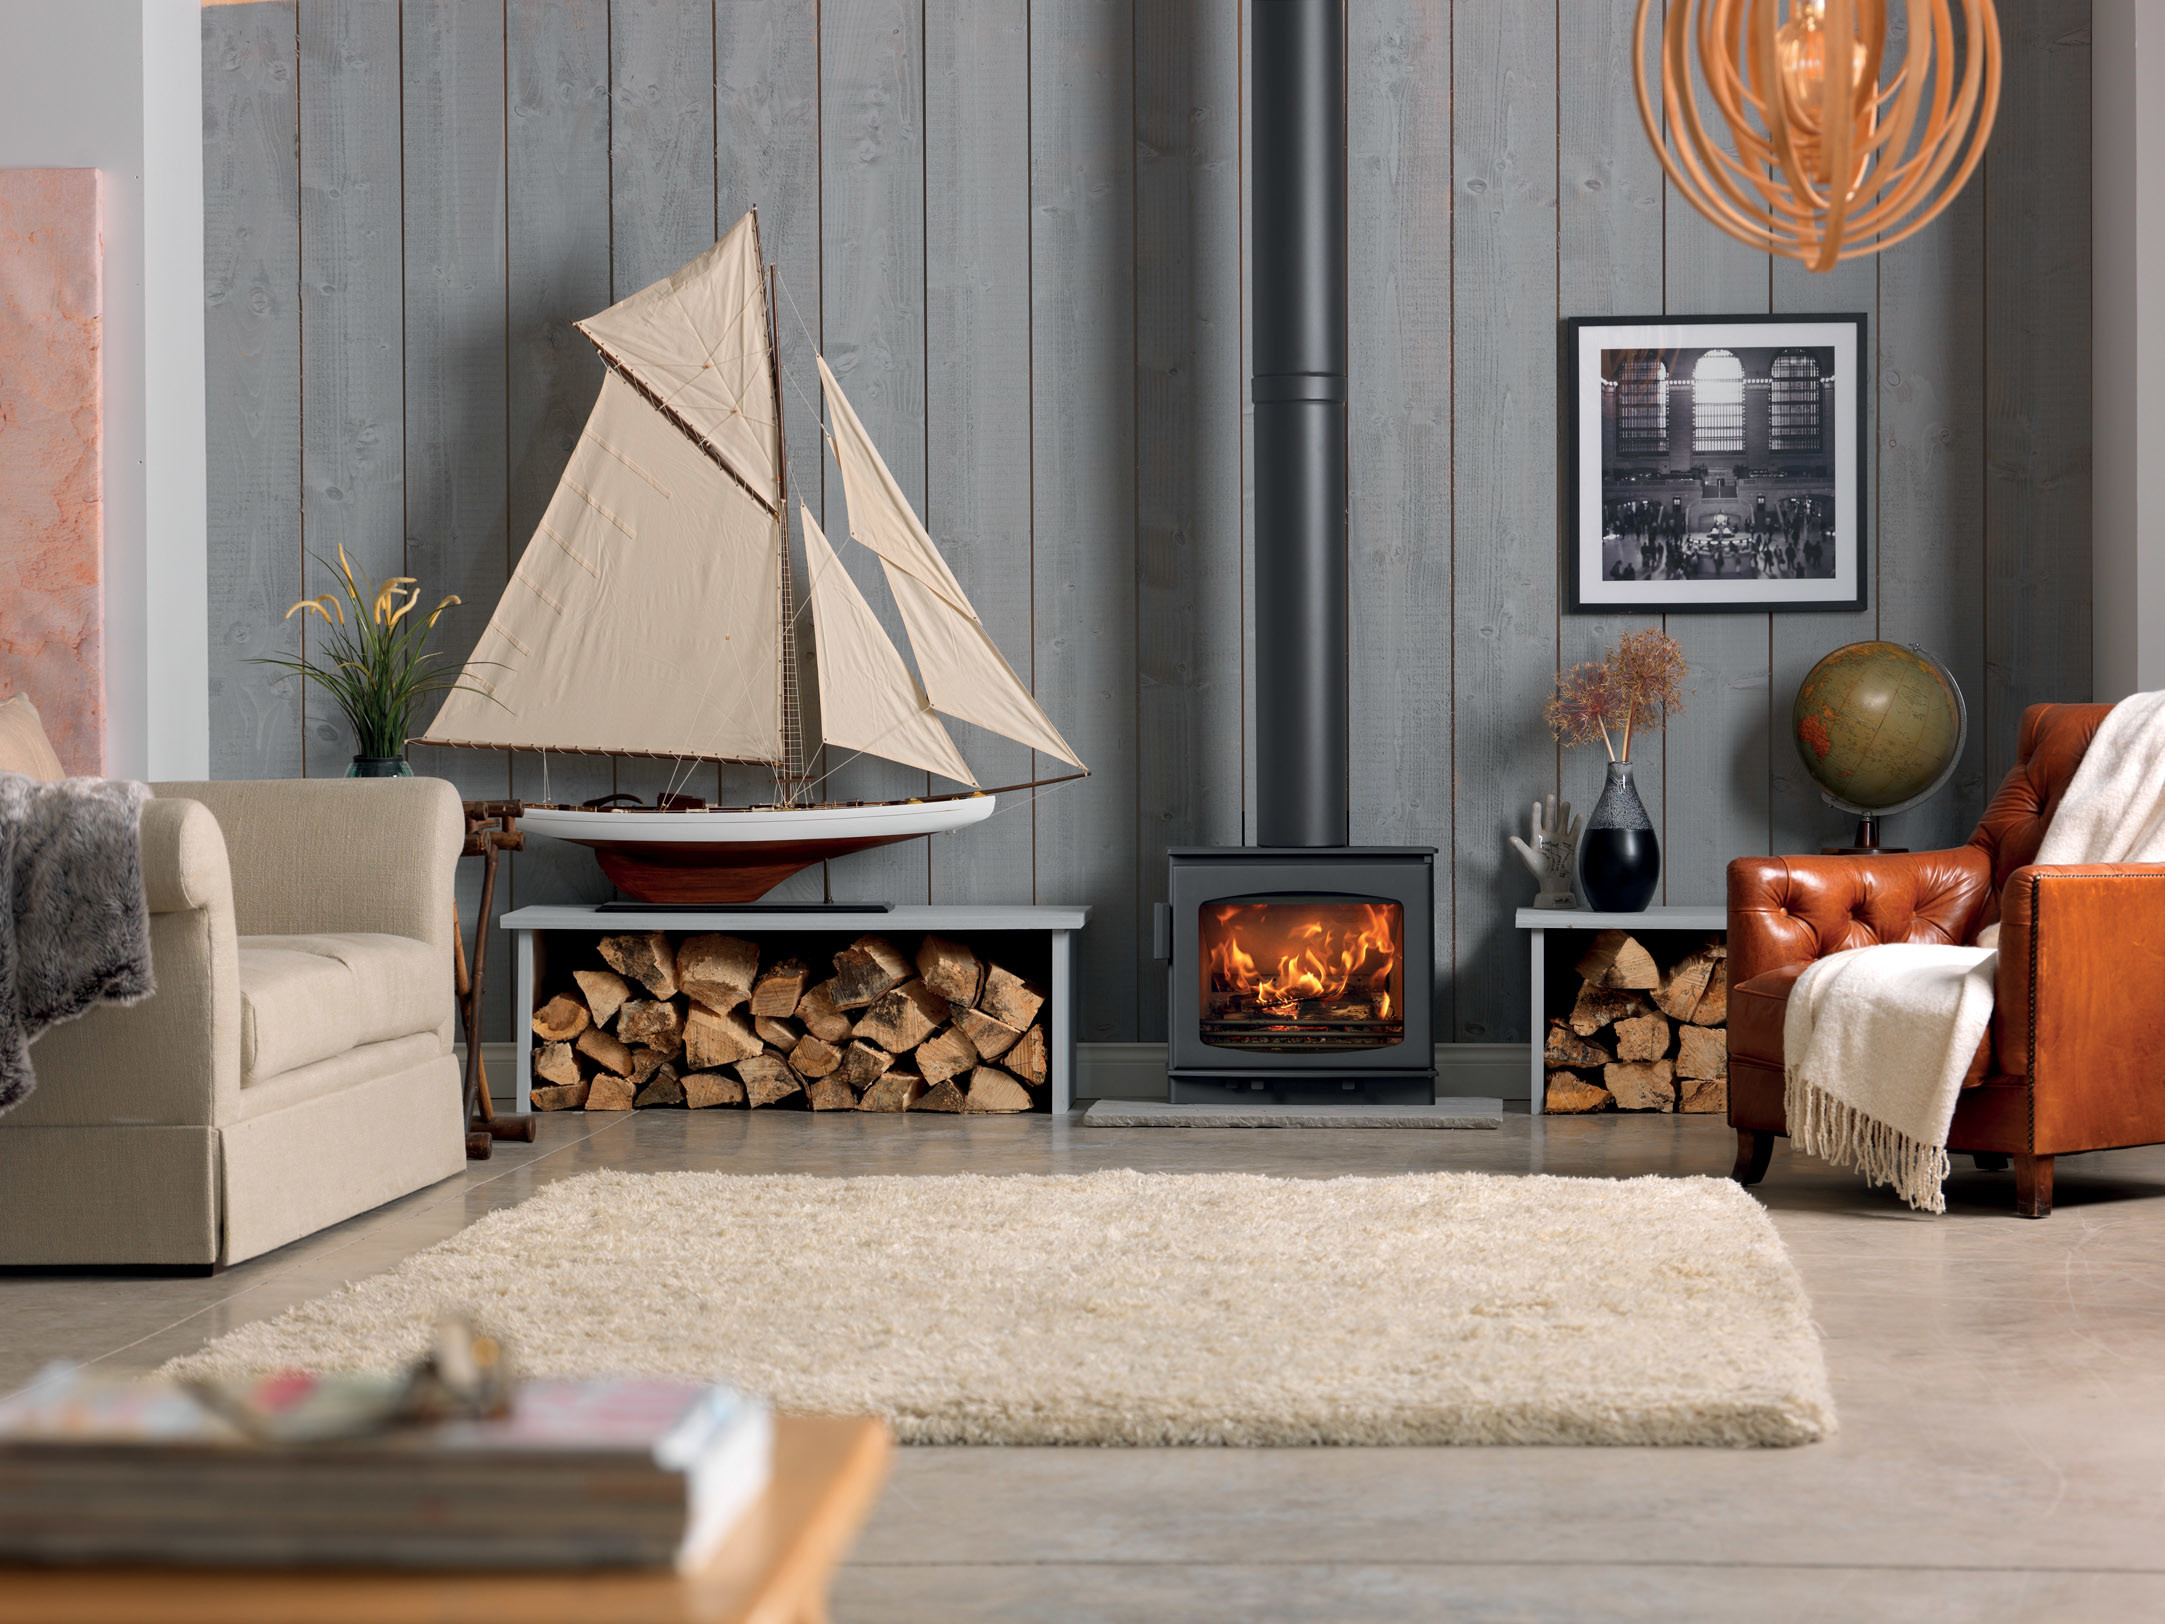 The Wychwood stove is DEFRA exempt enabling wood-burning in a controlled environment, SIA Eco Design 2022 ready.